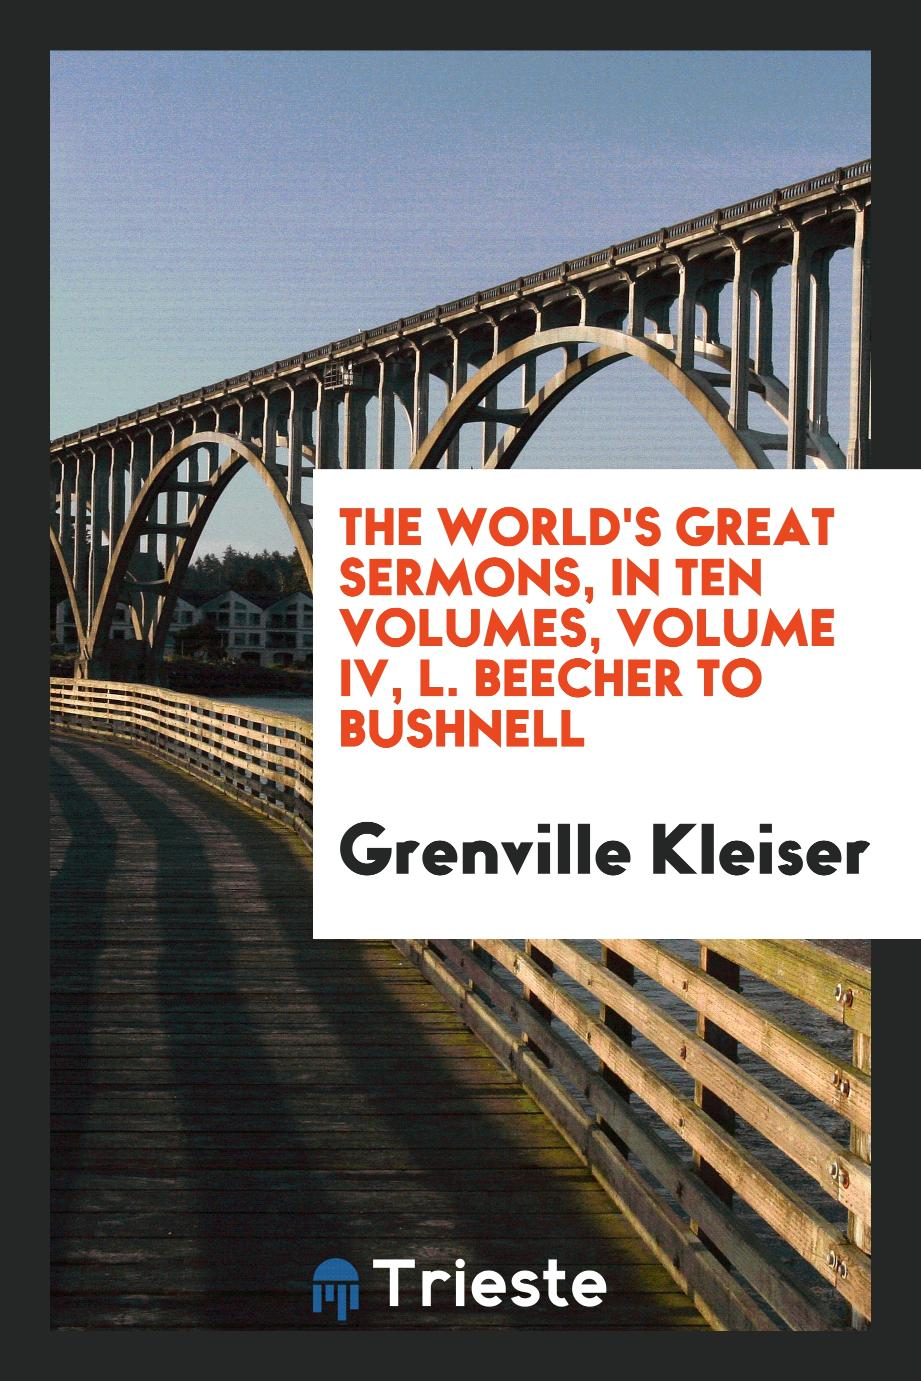 The World's Great Sermons, in Ten Volumes, Volume IV, L. Beecher to Bushnell